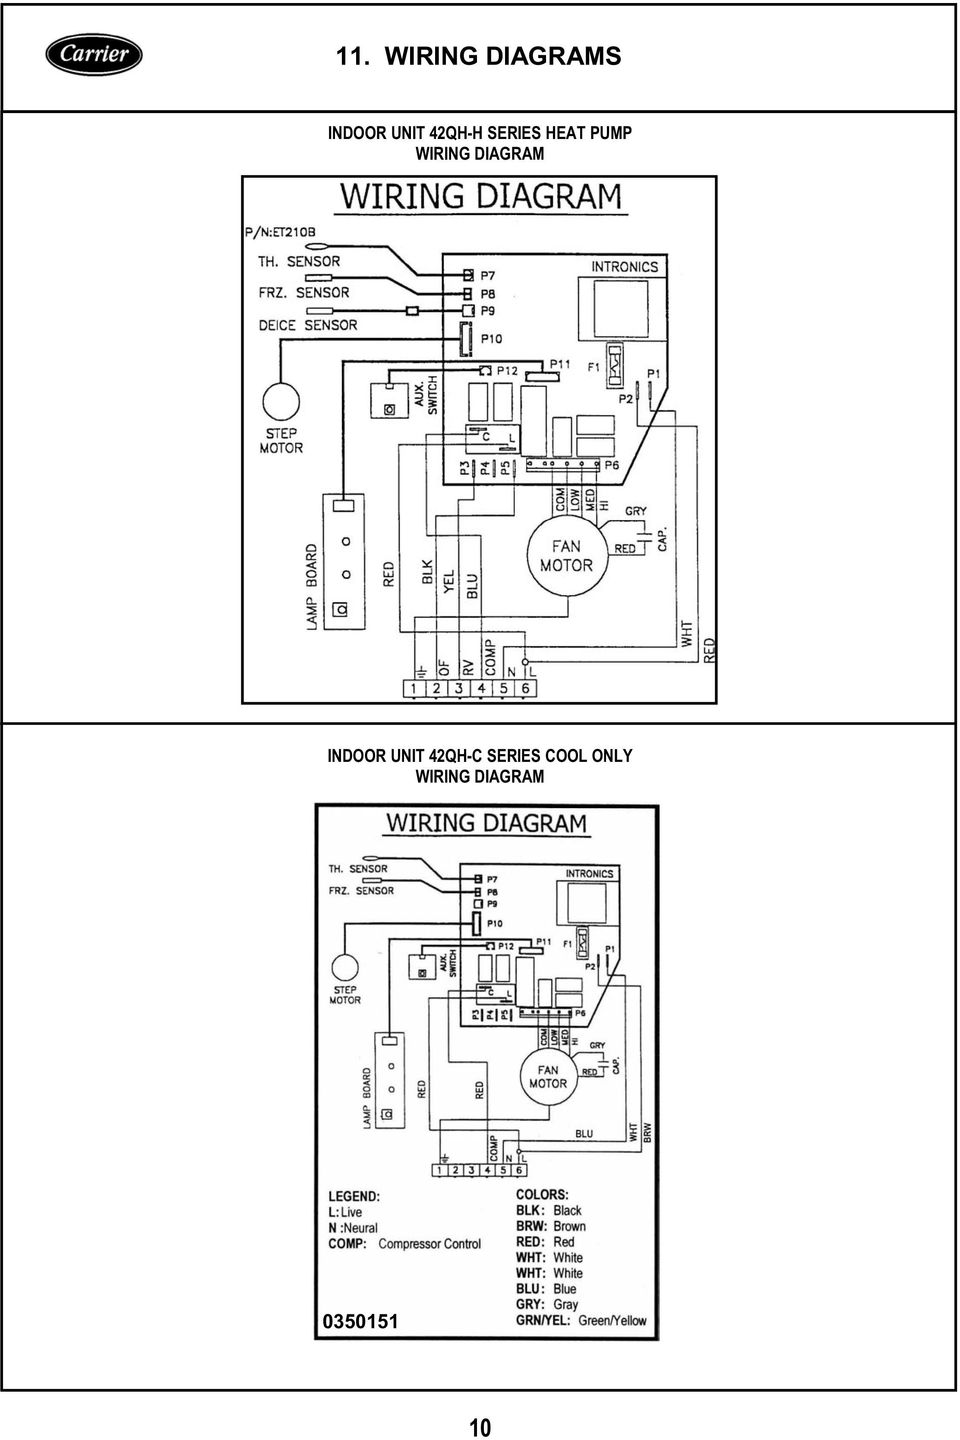 Service Maintenance Manual Pdf Wiring Diagram Cold Room Indoor Unit 42qh C